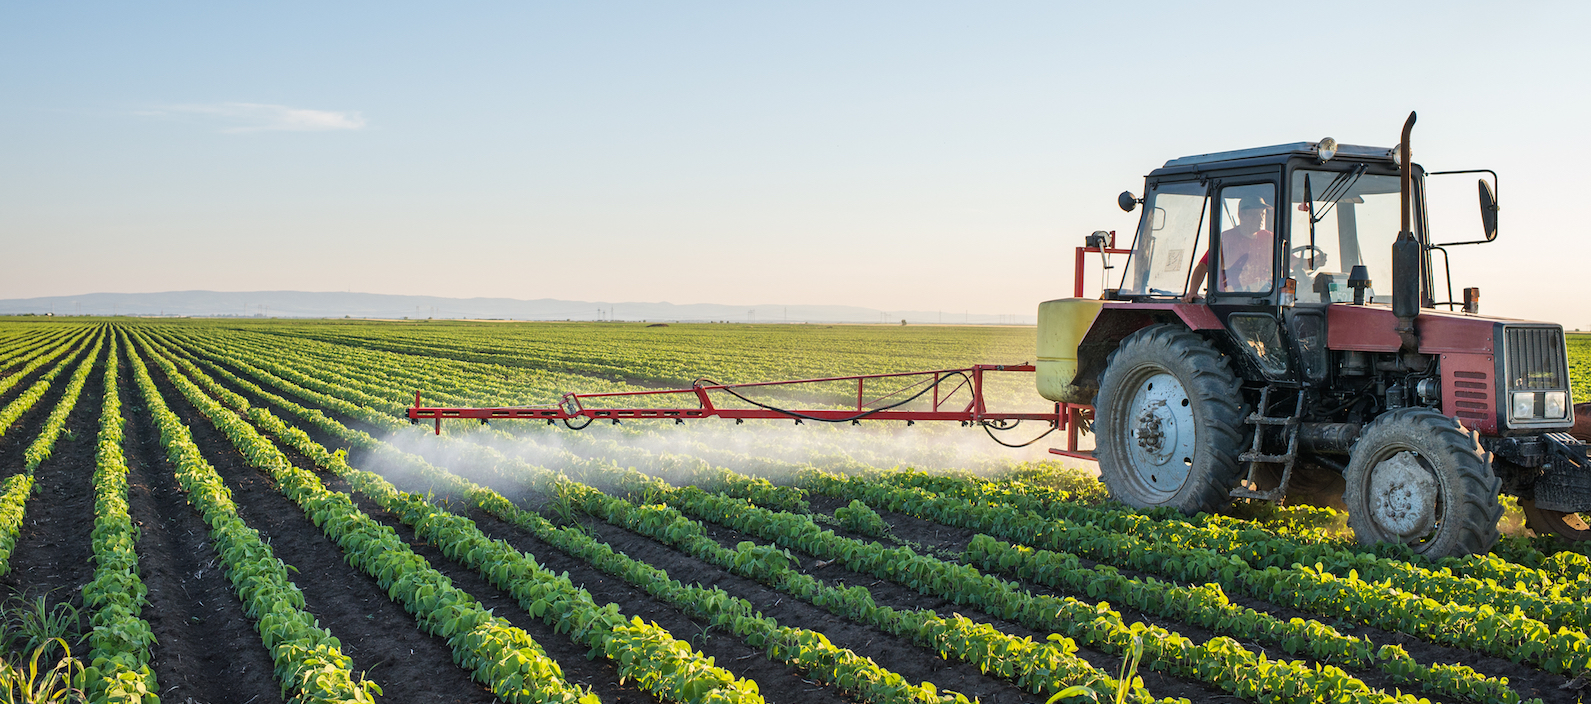 Tractor spraying an herbicide over crops